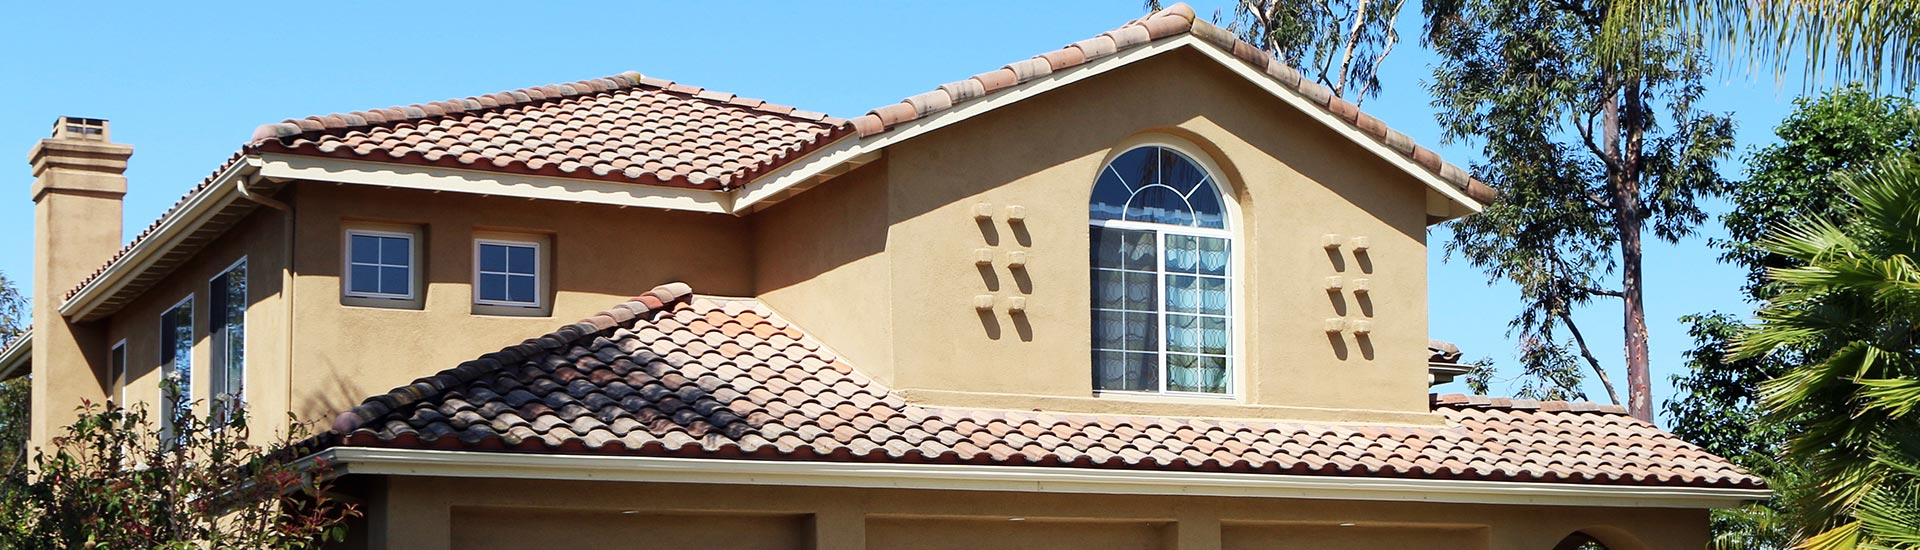 Roof Tiles Options